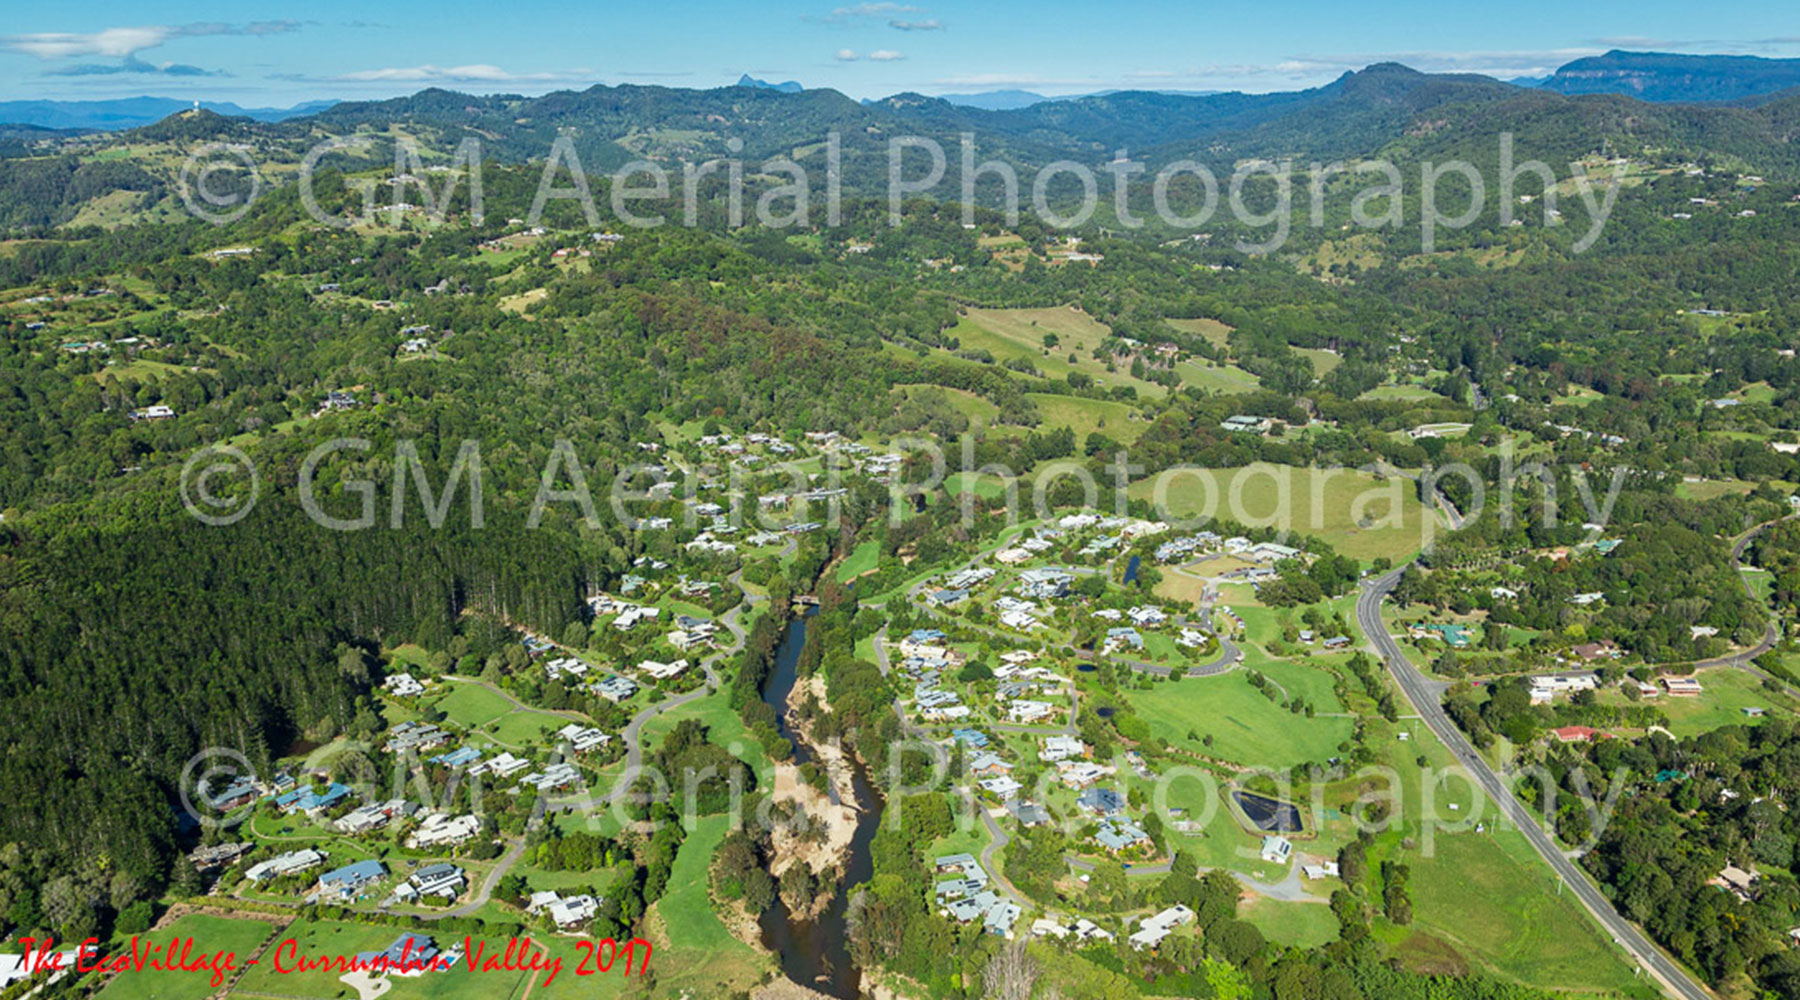 Aerial Photography Gold Coast photos